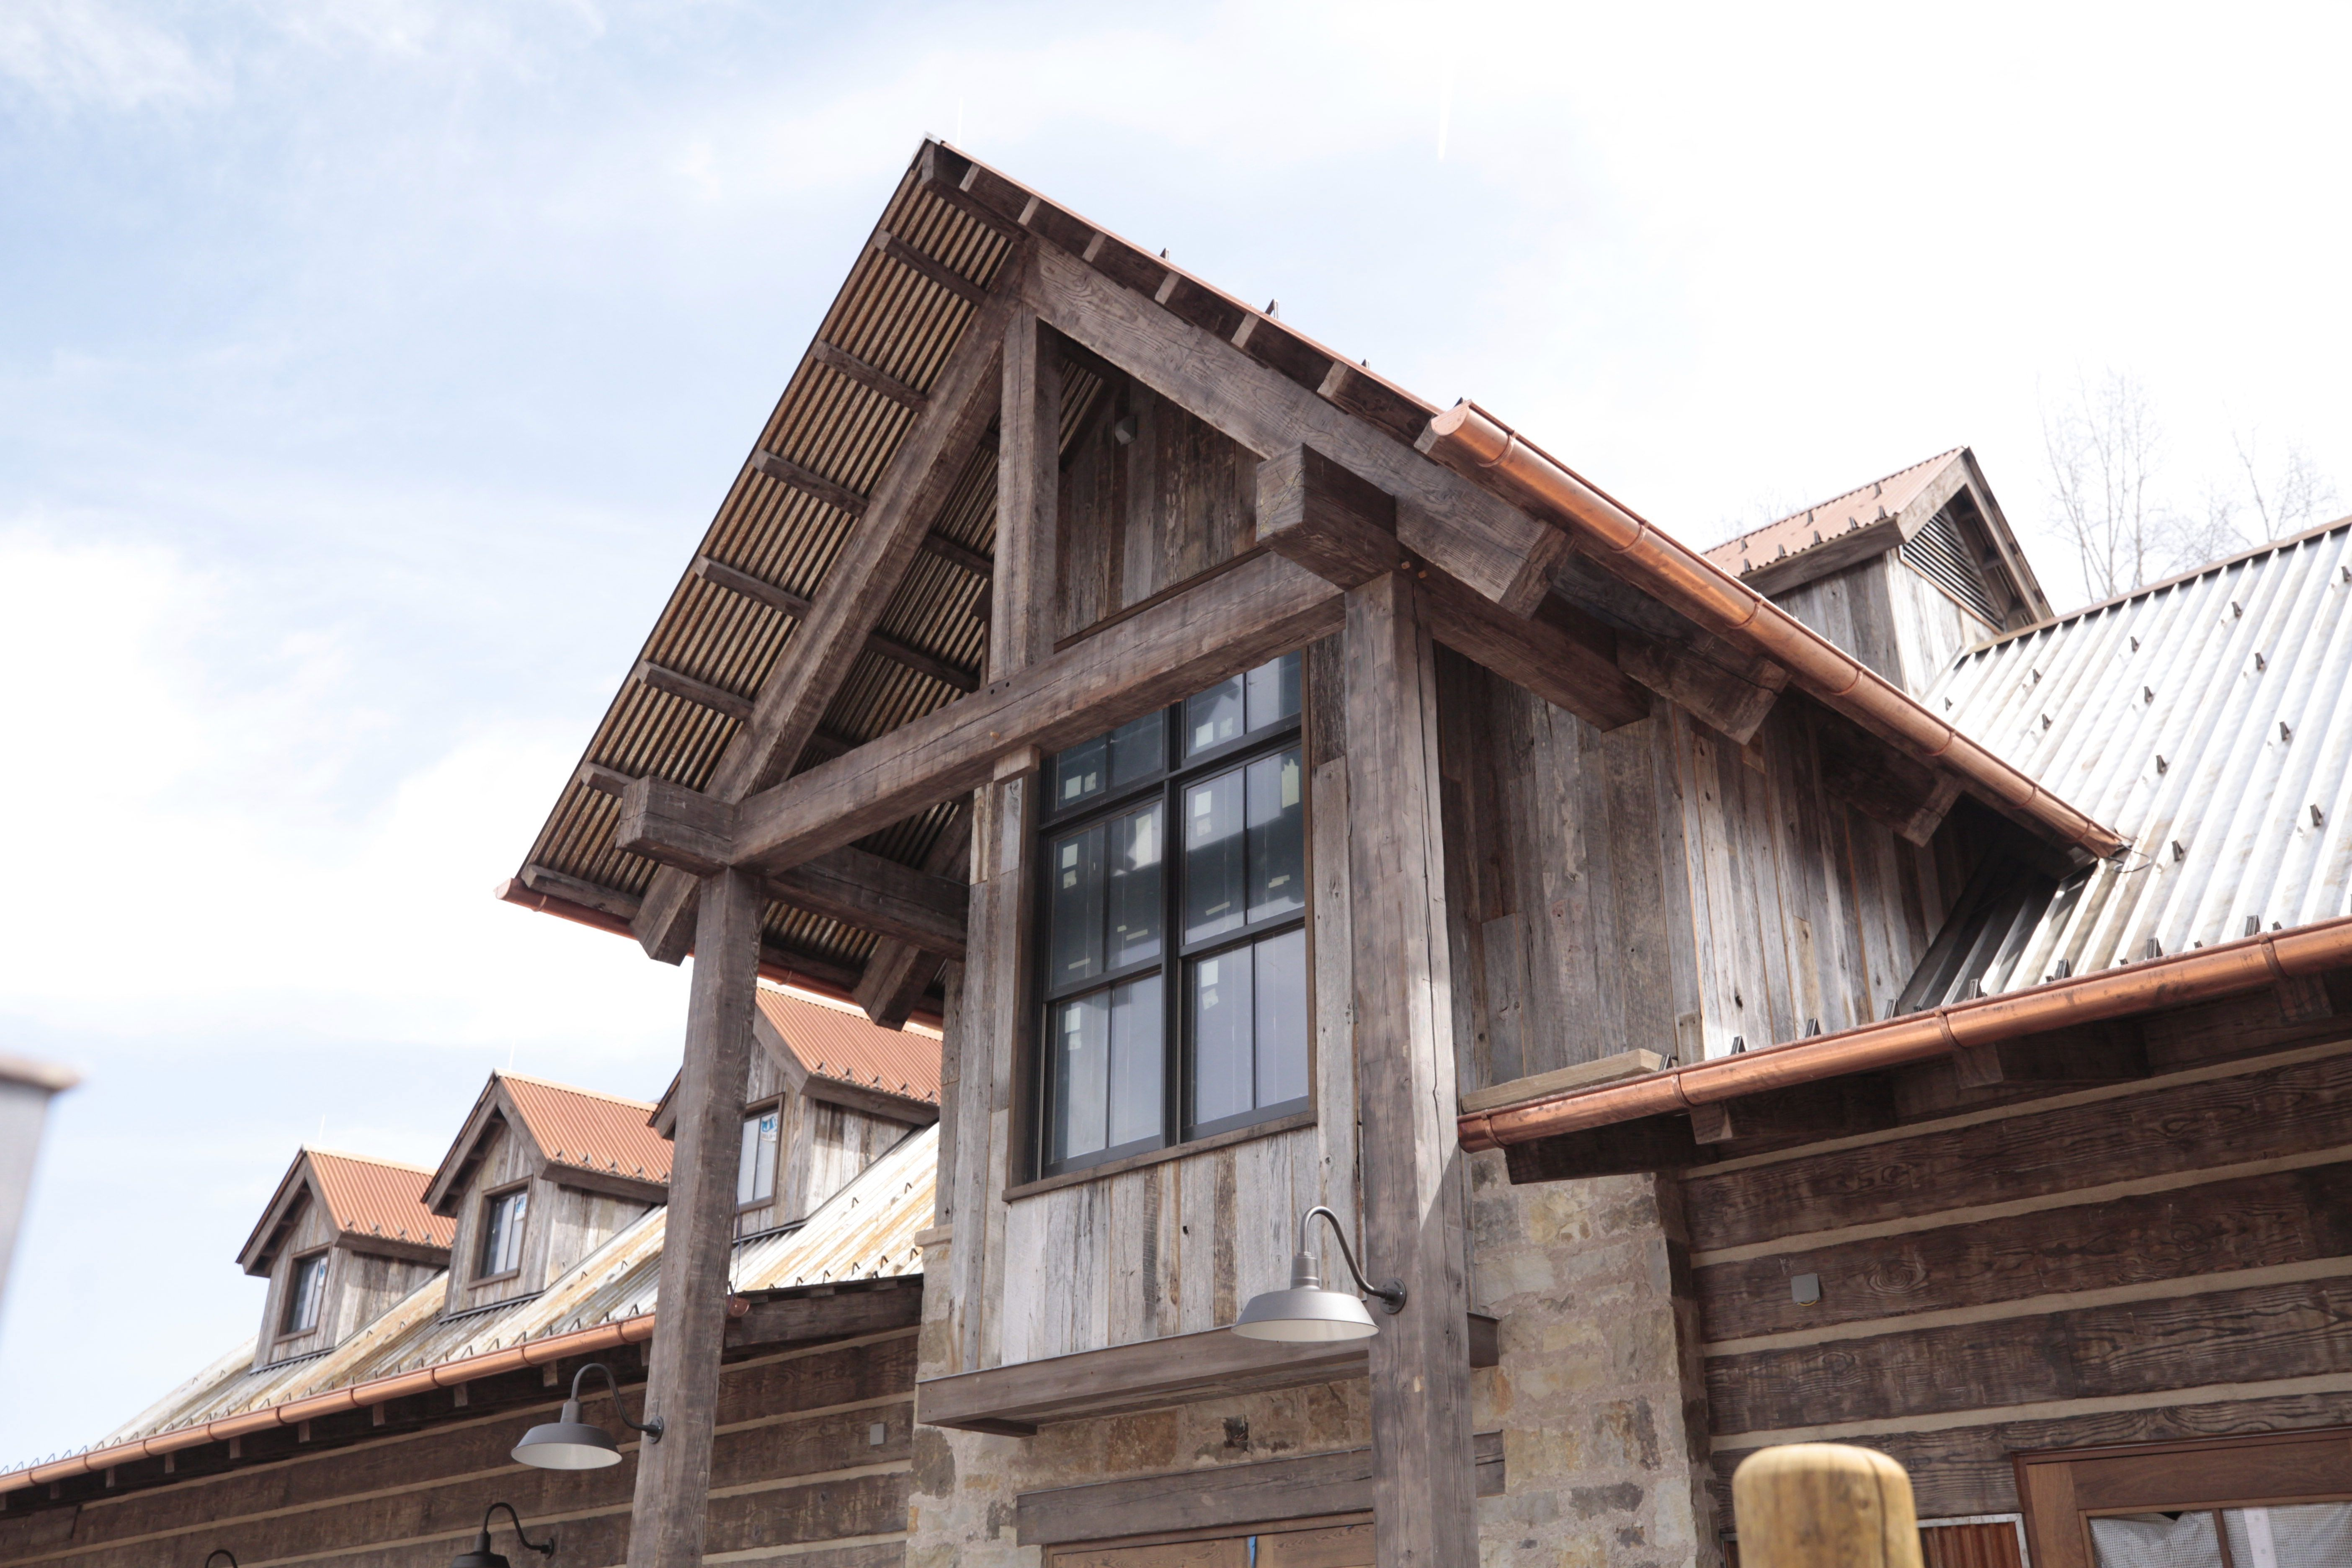 Reclaimed Douglas Fir Timber Framing Complements Weathered Grey Hardwood Barn Siding Reclaimed Barn Wood Floors Barn Siding Barnwood Floors